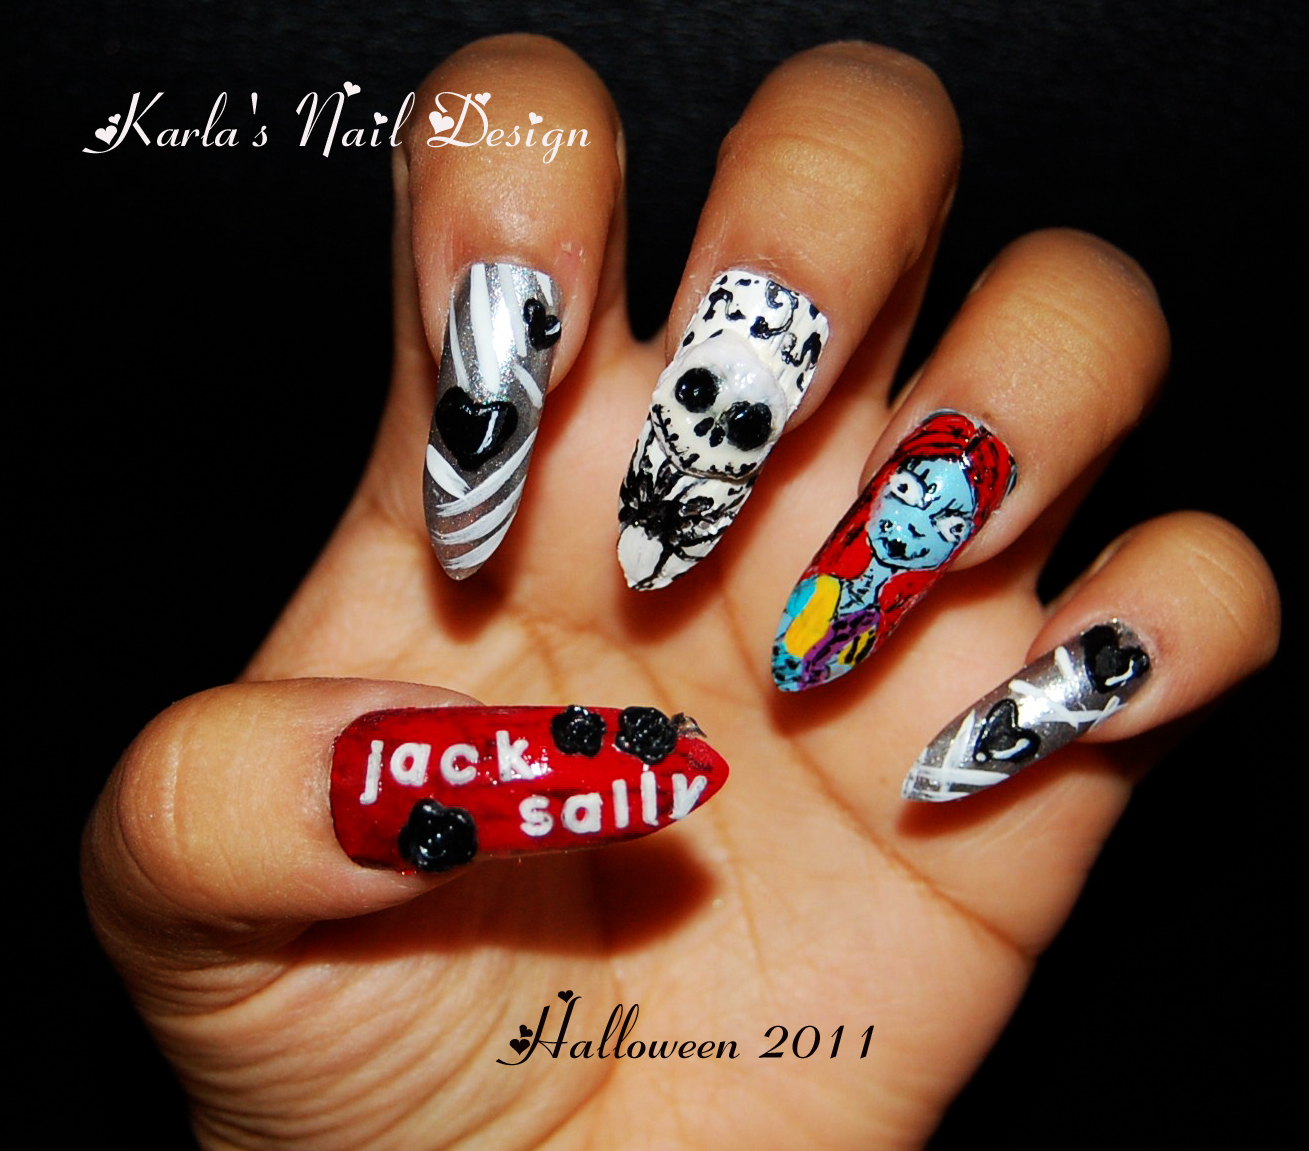 Colorful Nightmare Before Christmas Acrylic Nails Images - Nail Art ...